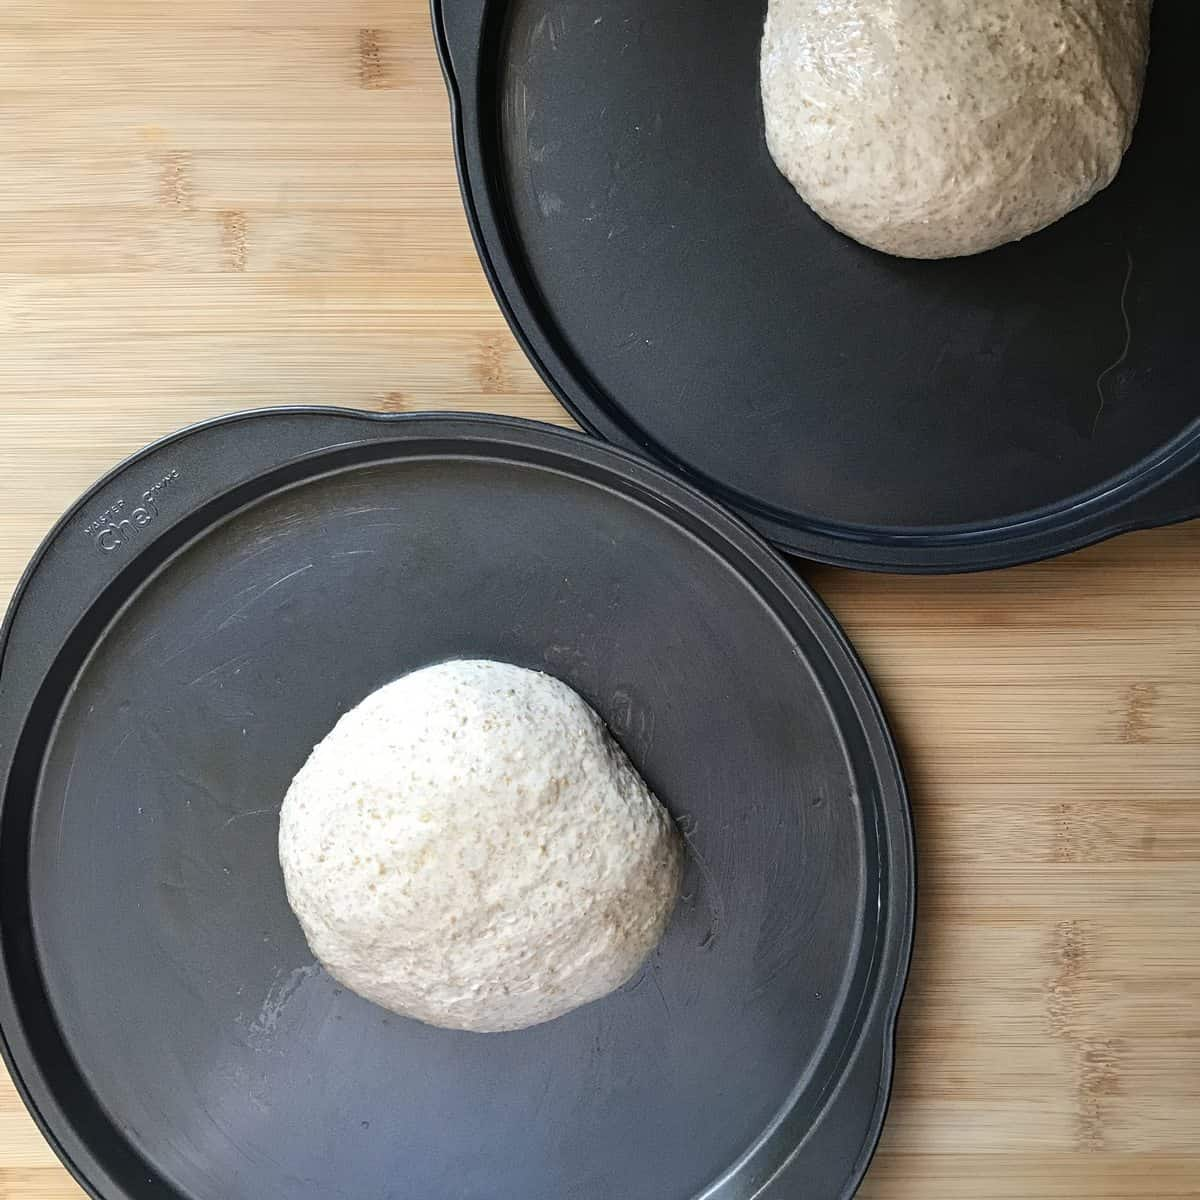 Two balls on dough on pizza pans.